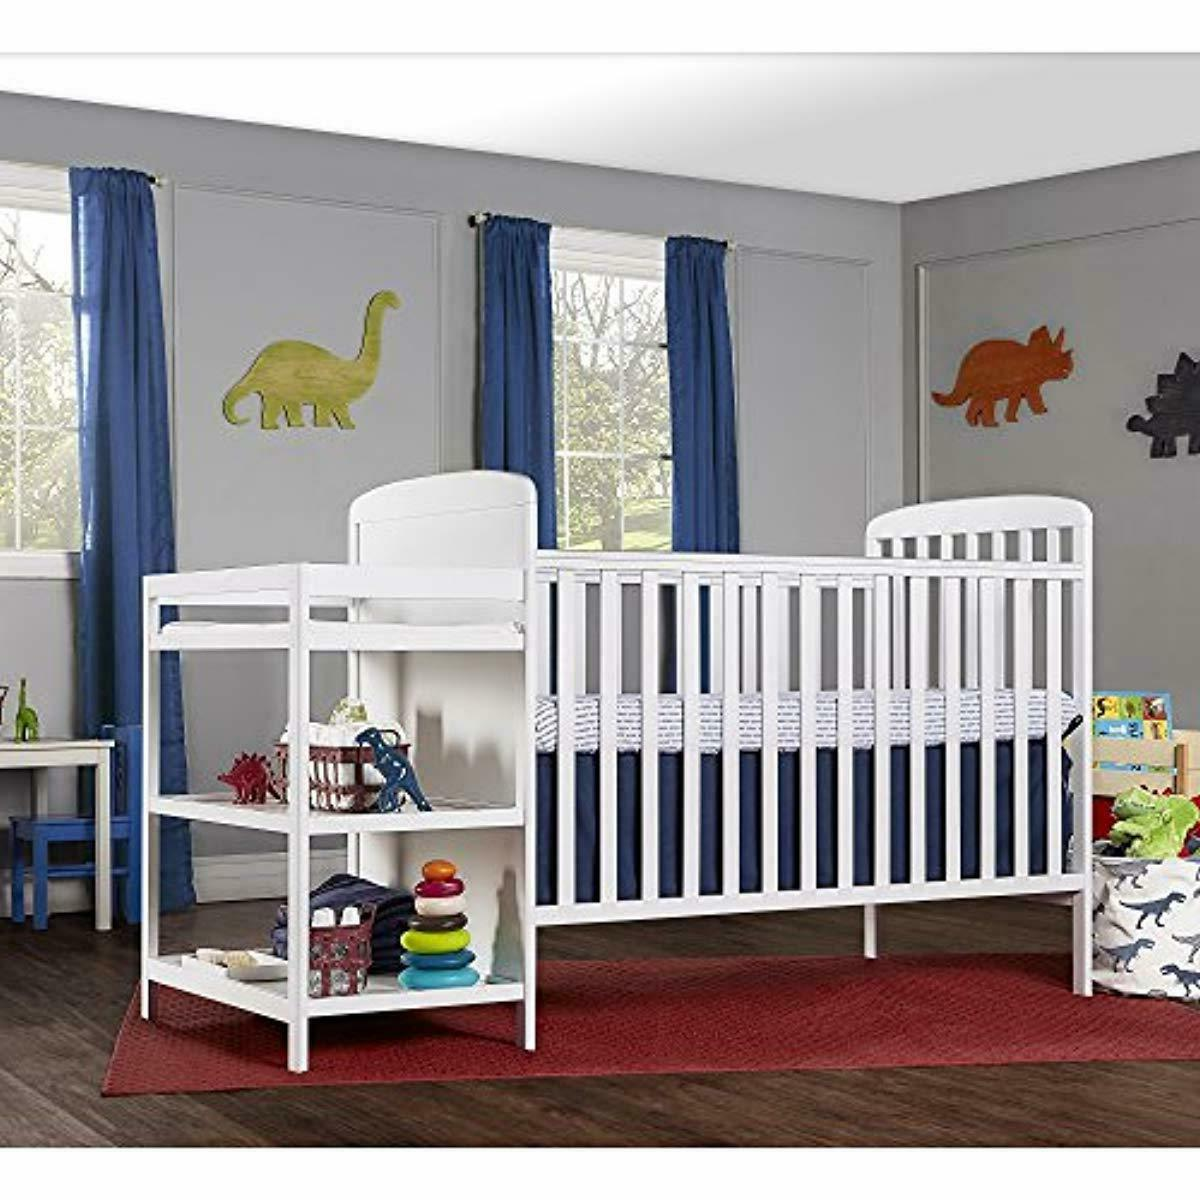 4 Size Crib Table Combo daybed size bed